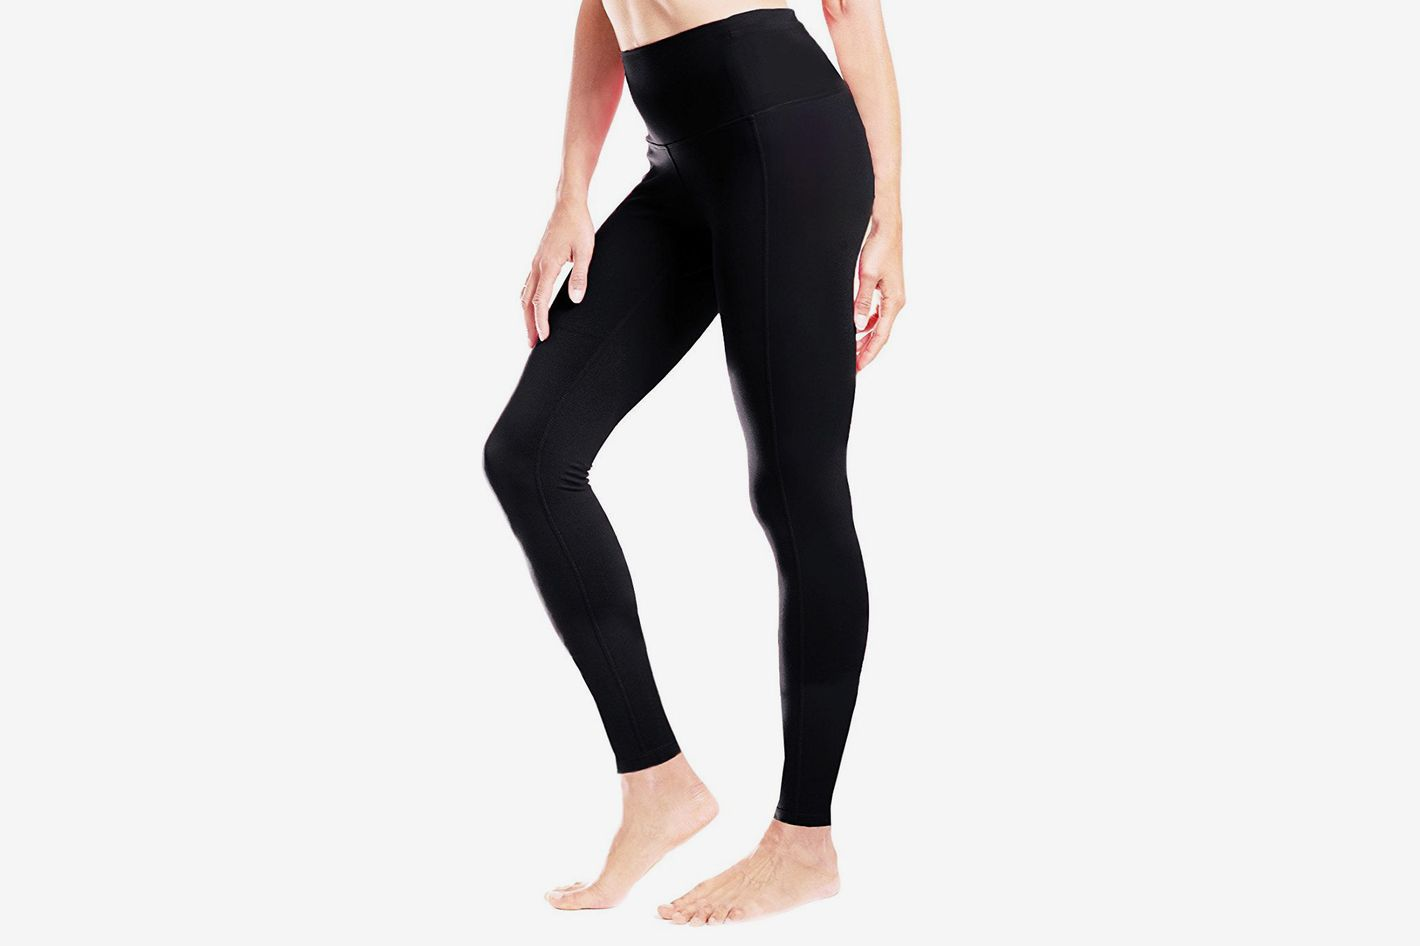 099919bb86d98 Yogipace Petite Length High Waisted Yoga Leggings